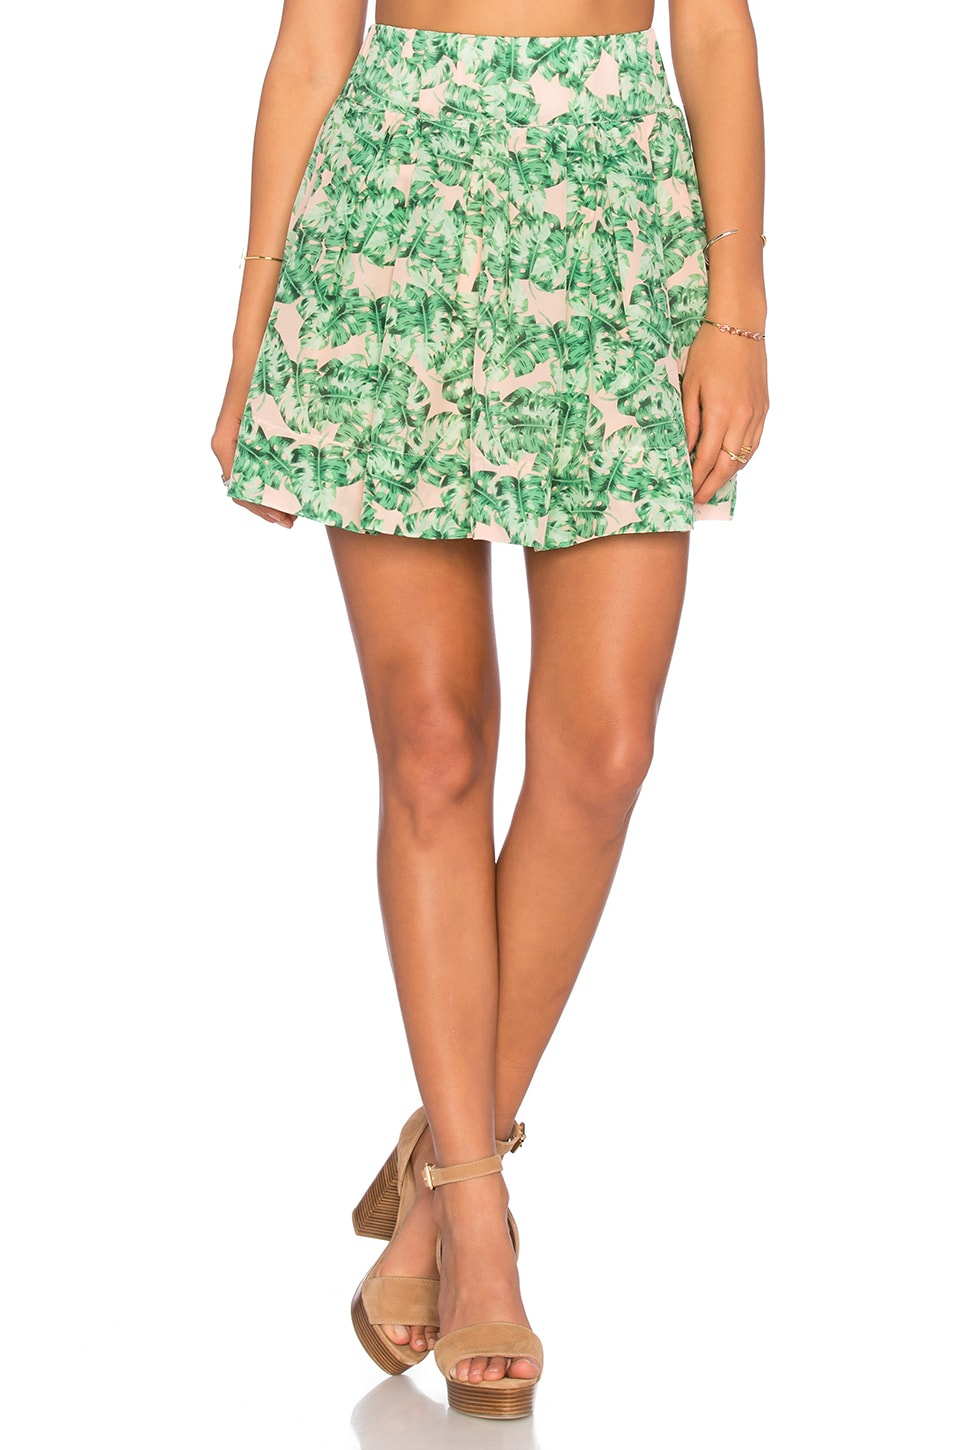 Country Club Babe Mini Skirt at REVOLVE